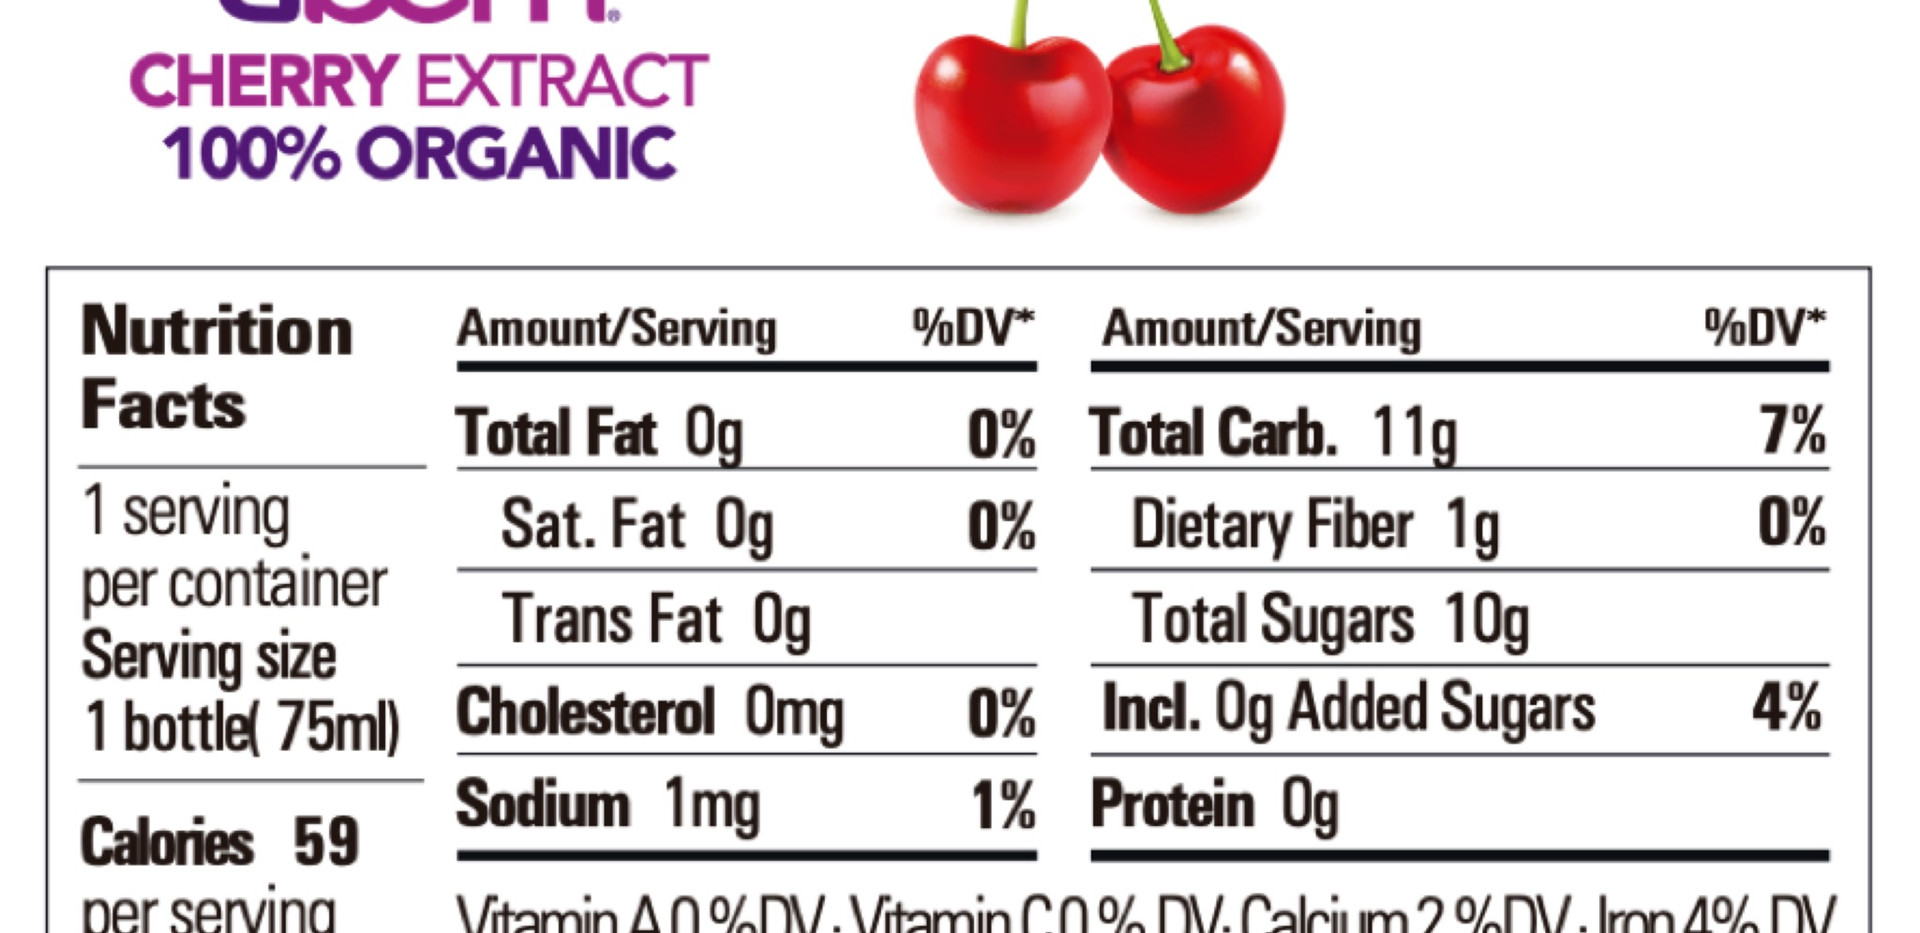 Cherry Extract Nutrition Facts